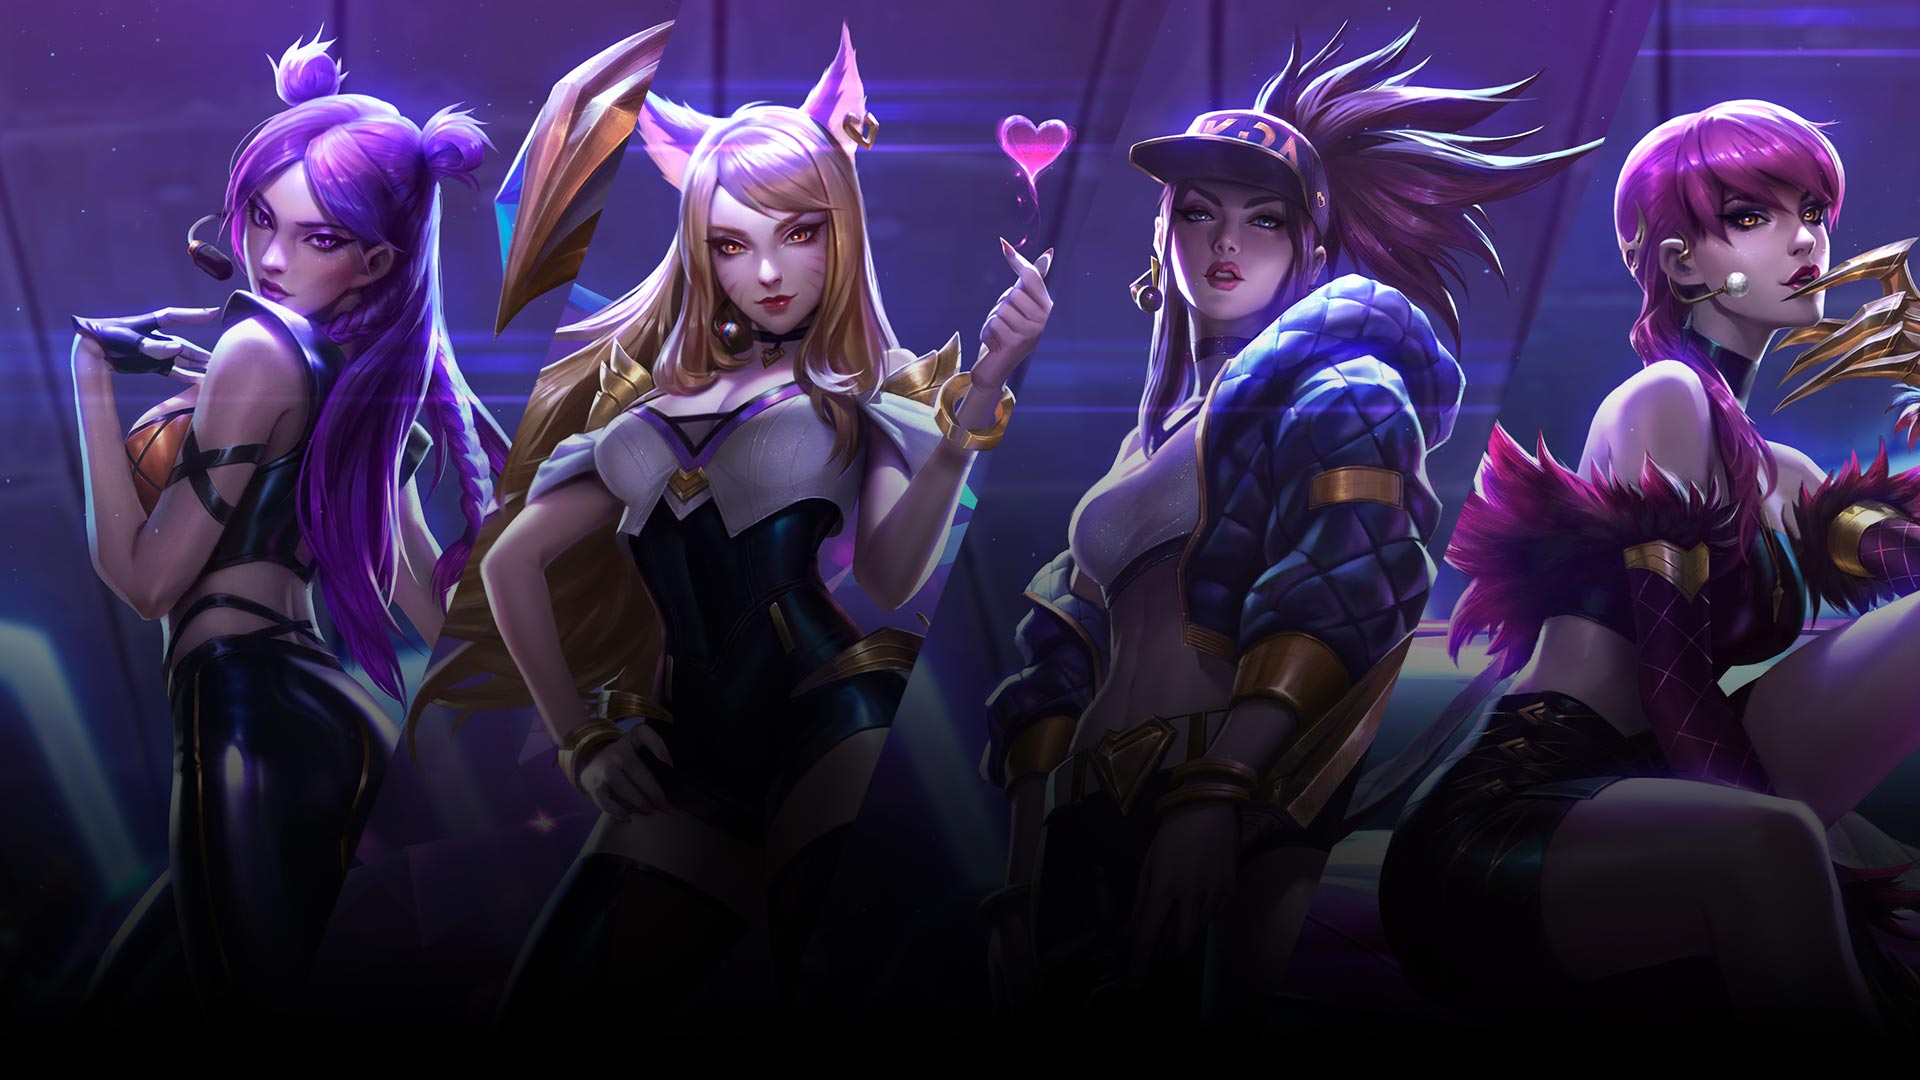 https://universe-meeps.leagueoflegends.com/v1/assets/images/kda/kda-hero.jpg